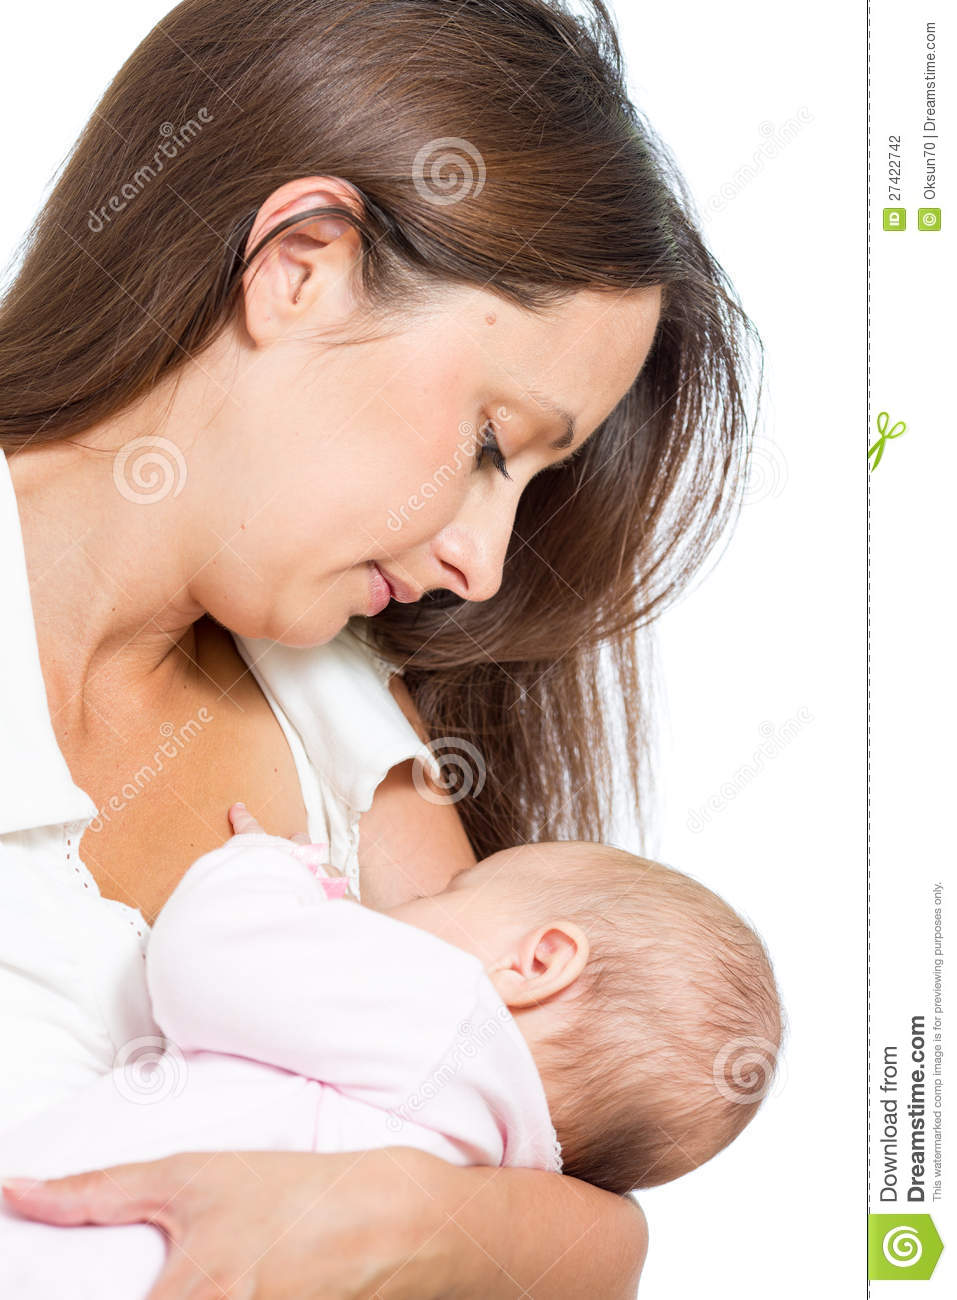 ABORTION, PREGNANCY AND BIRTHING dissertation writing help